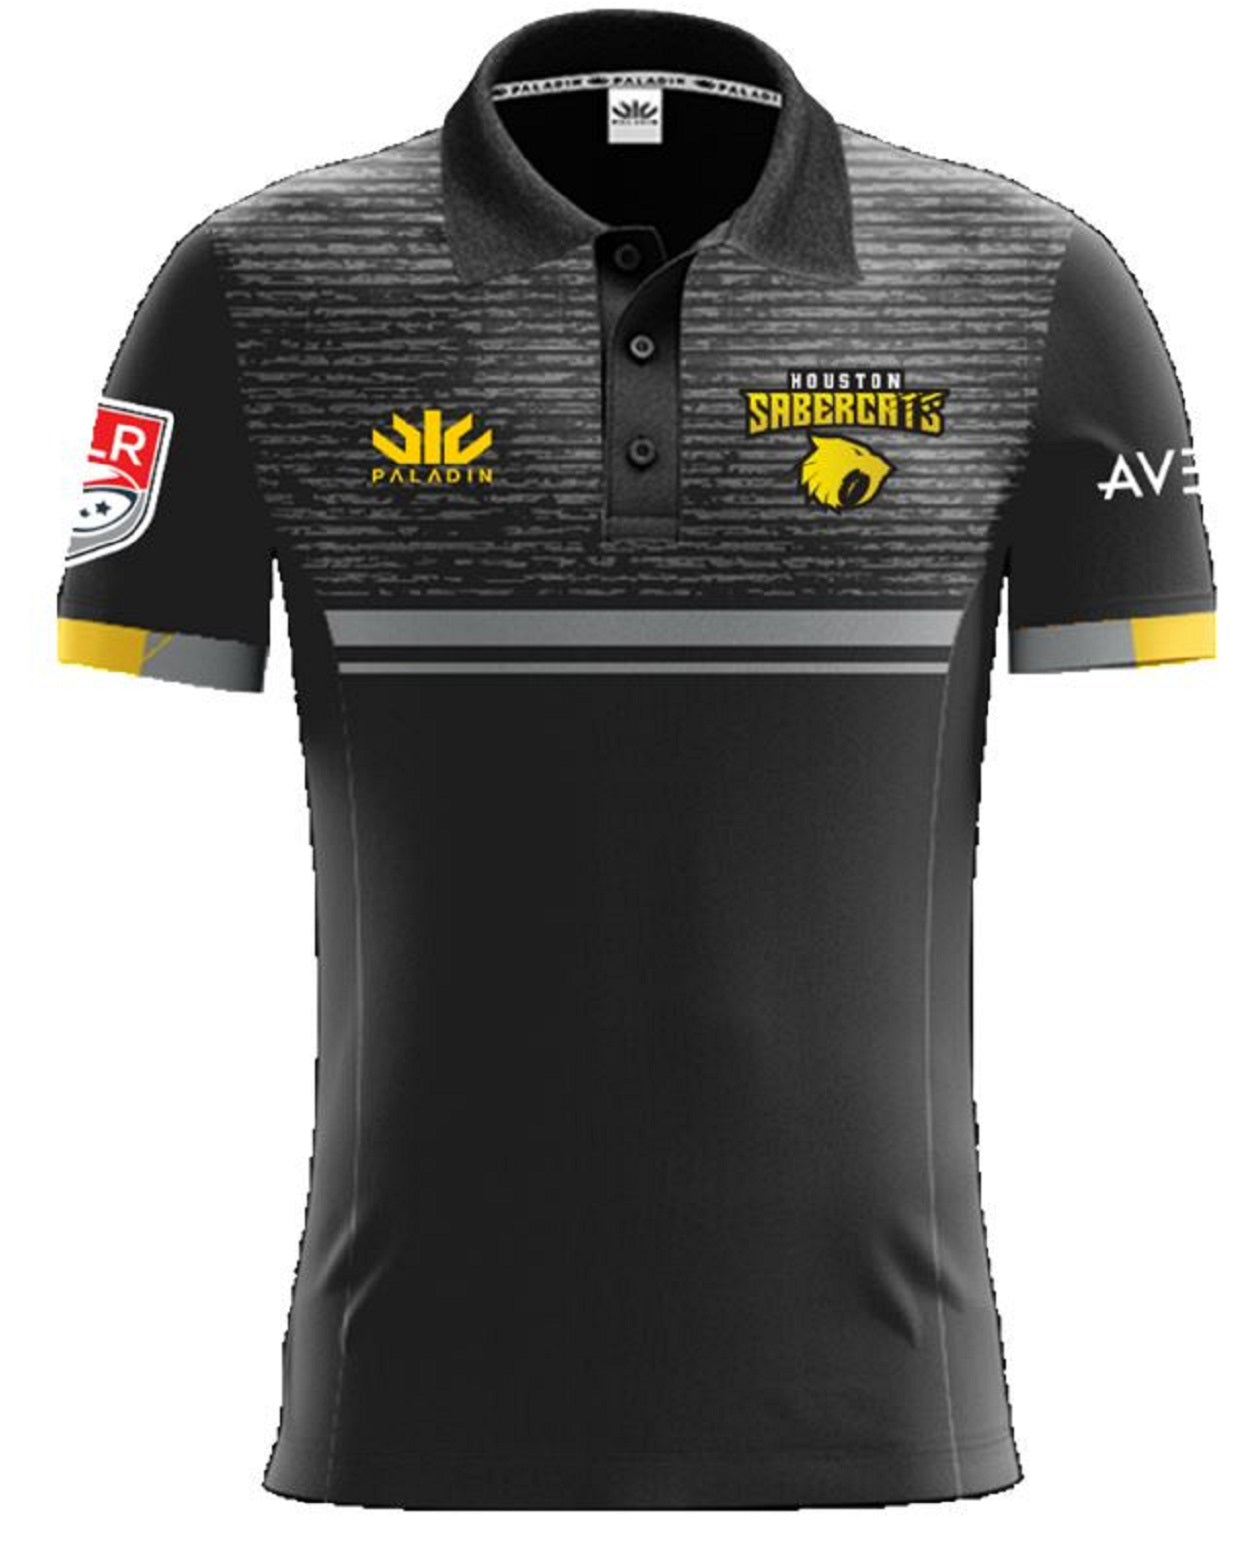 Sabercats Men's Polo